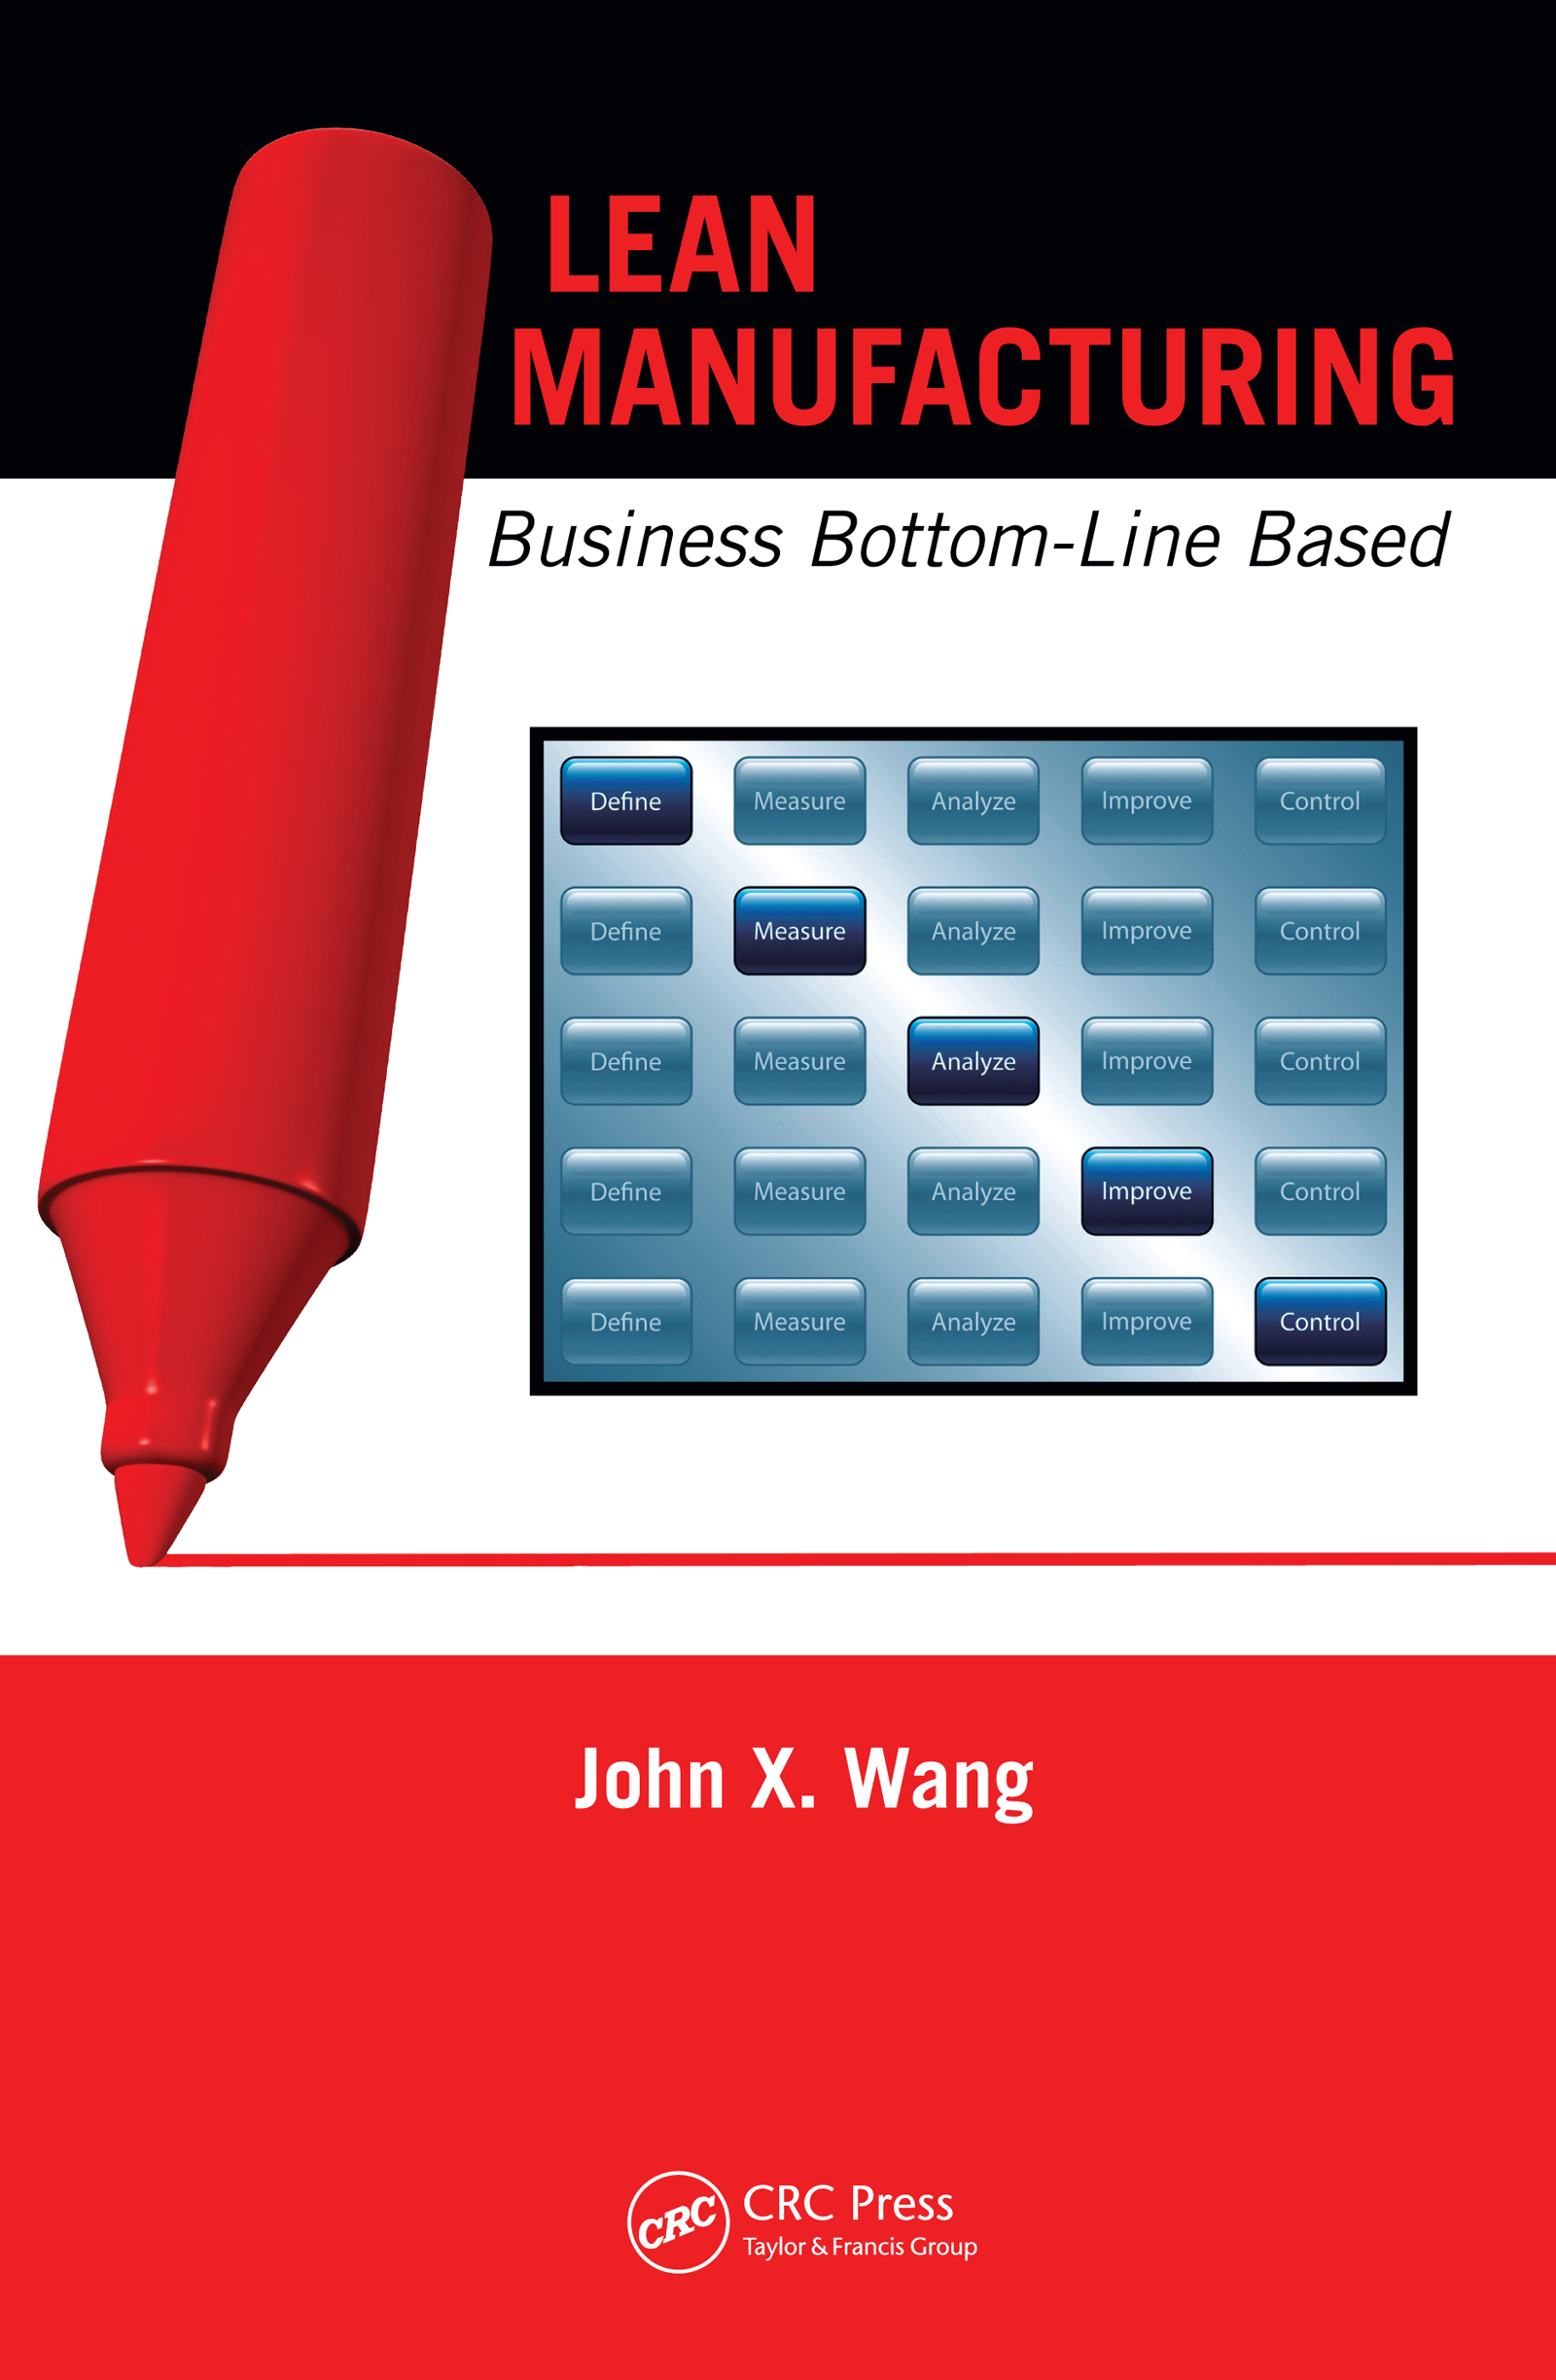 Download Ebook Lean Manufacturing by John X. Wang Pdf